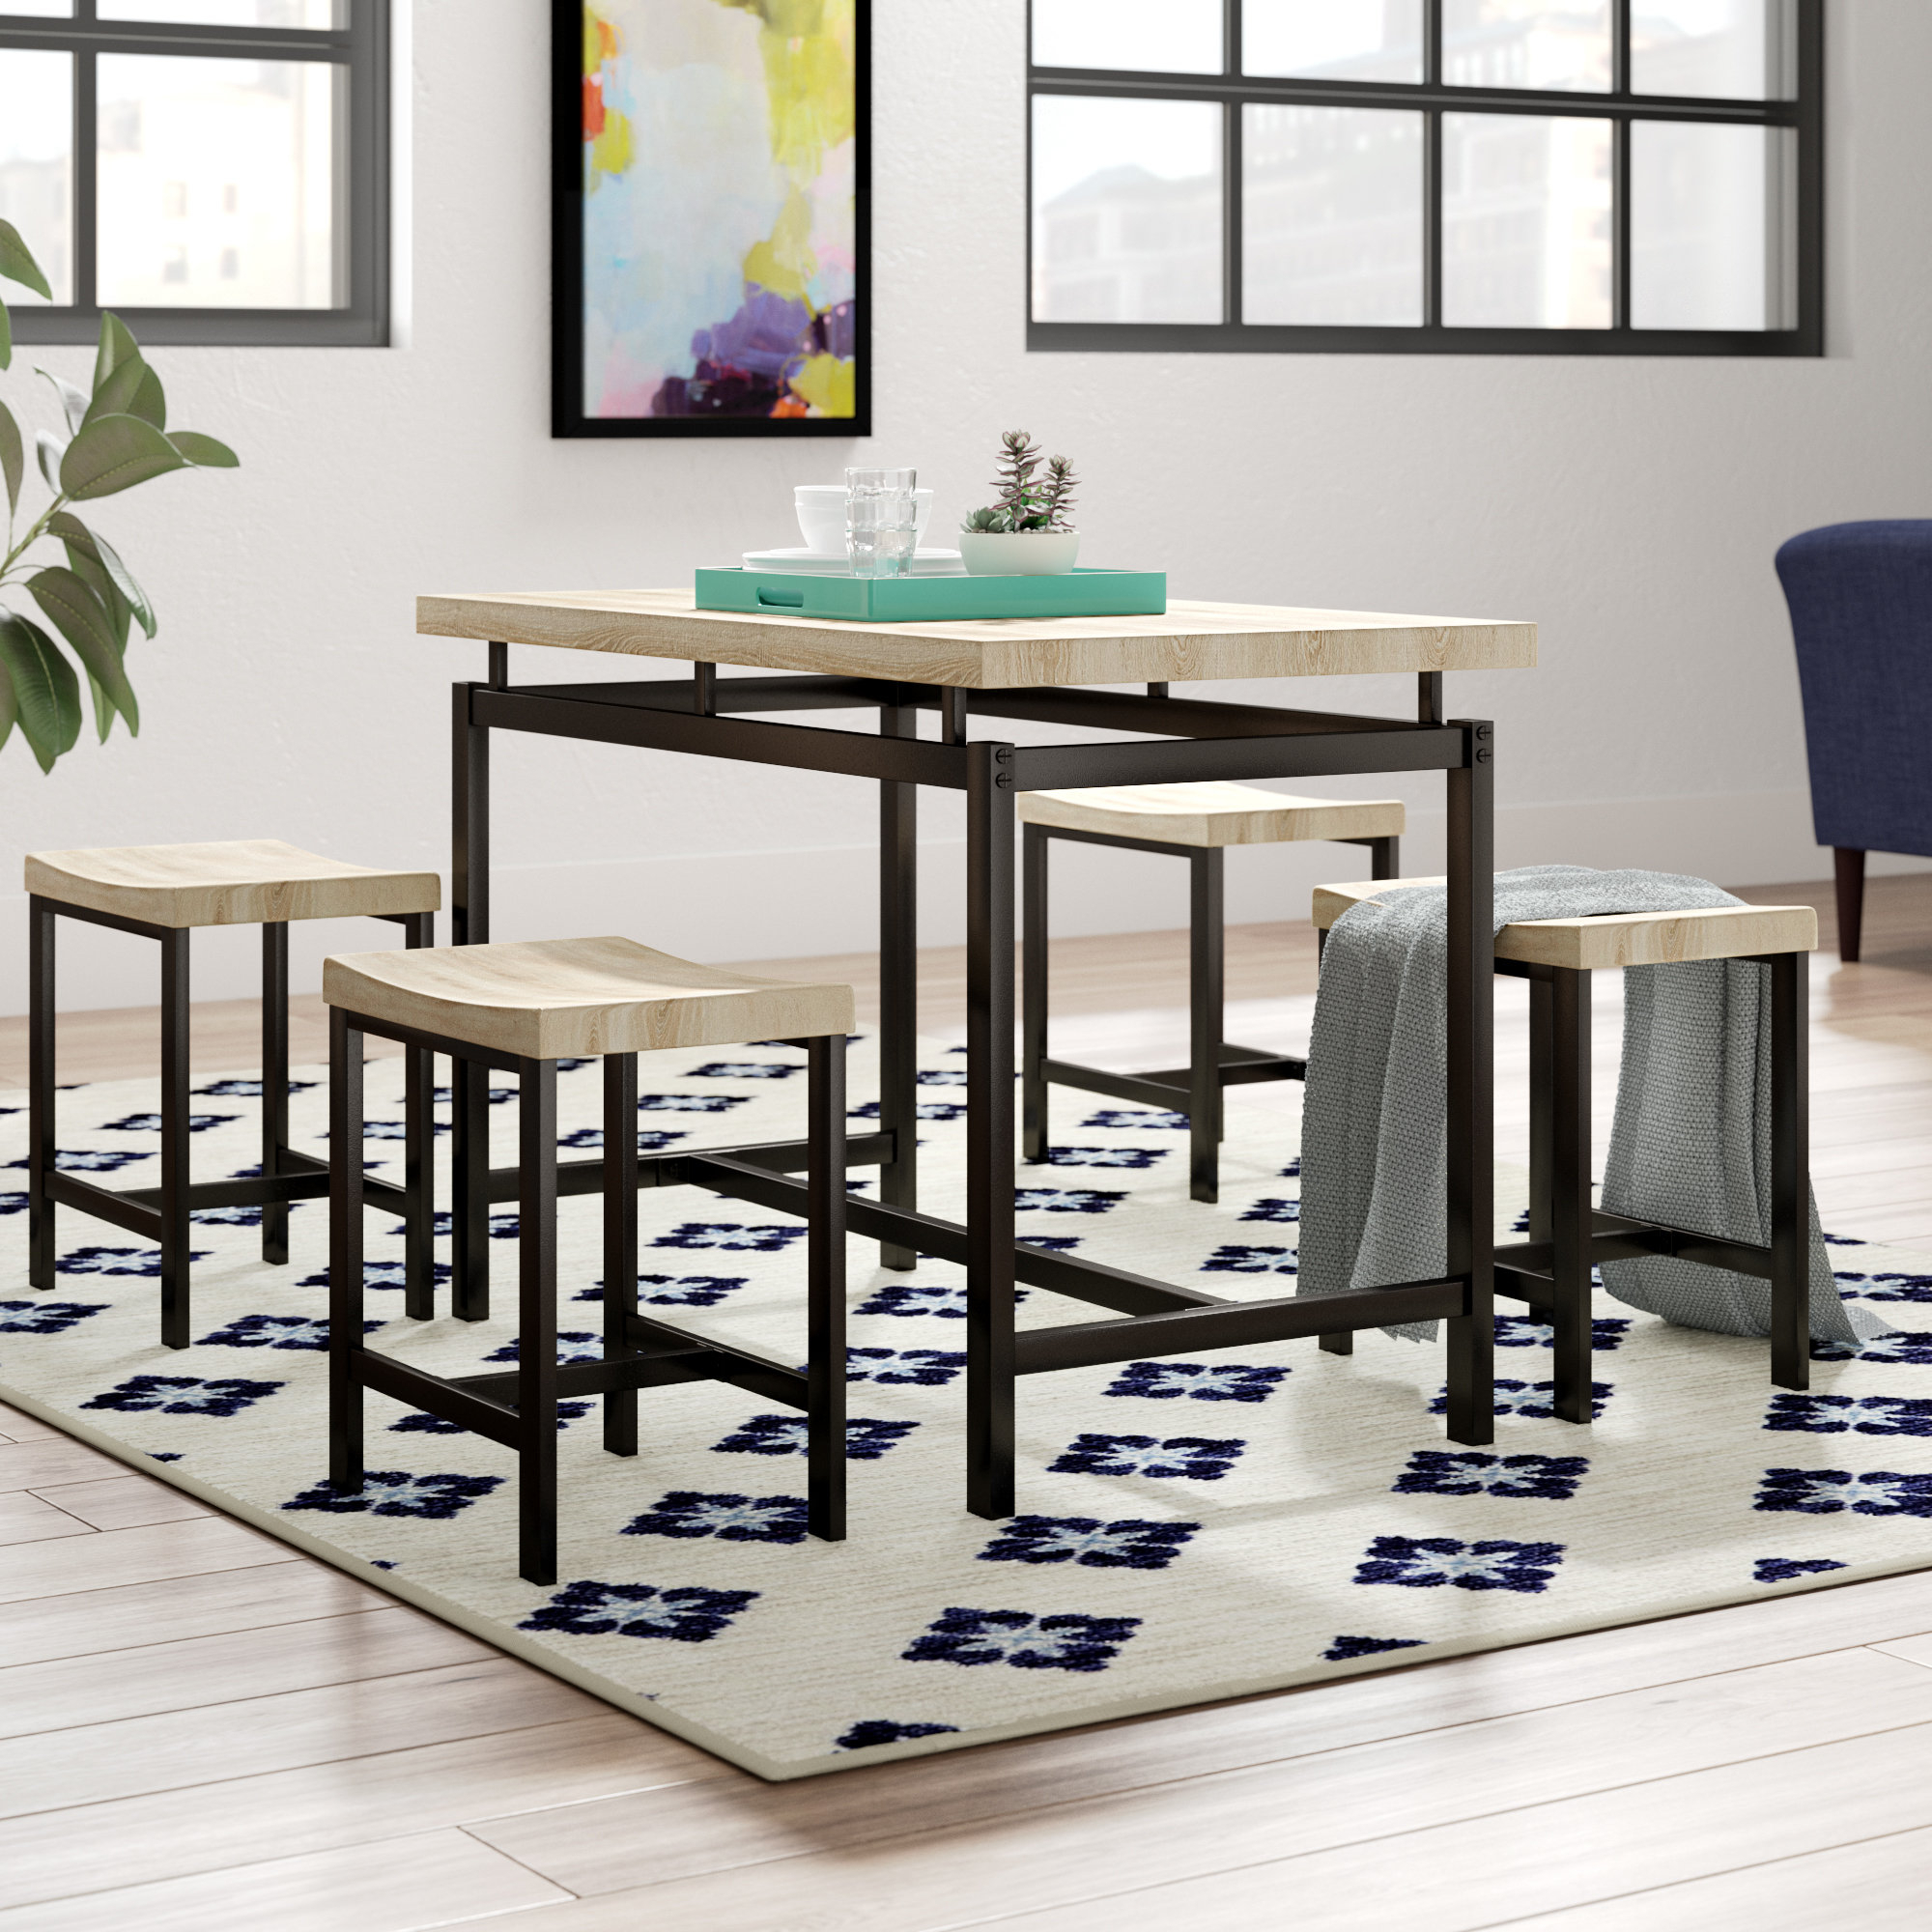 Wayfair With Regard To Widely Used Presson 3 Piece Counter Height Dining Sets (View 4 of 25)